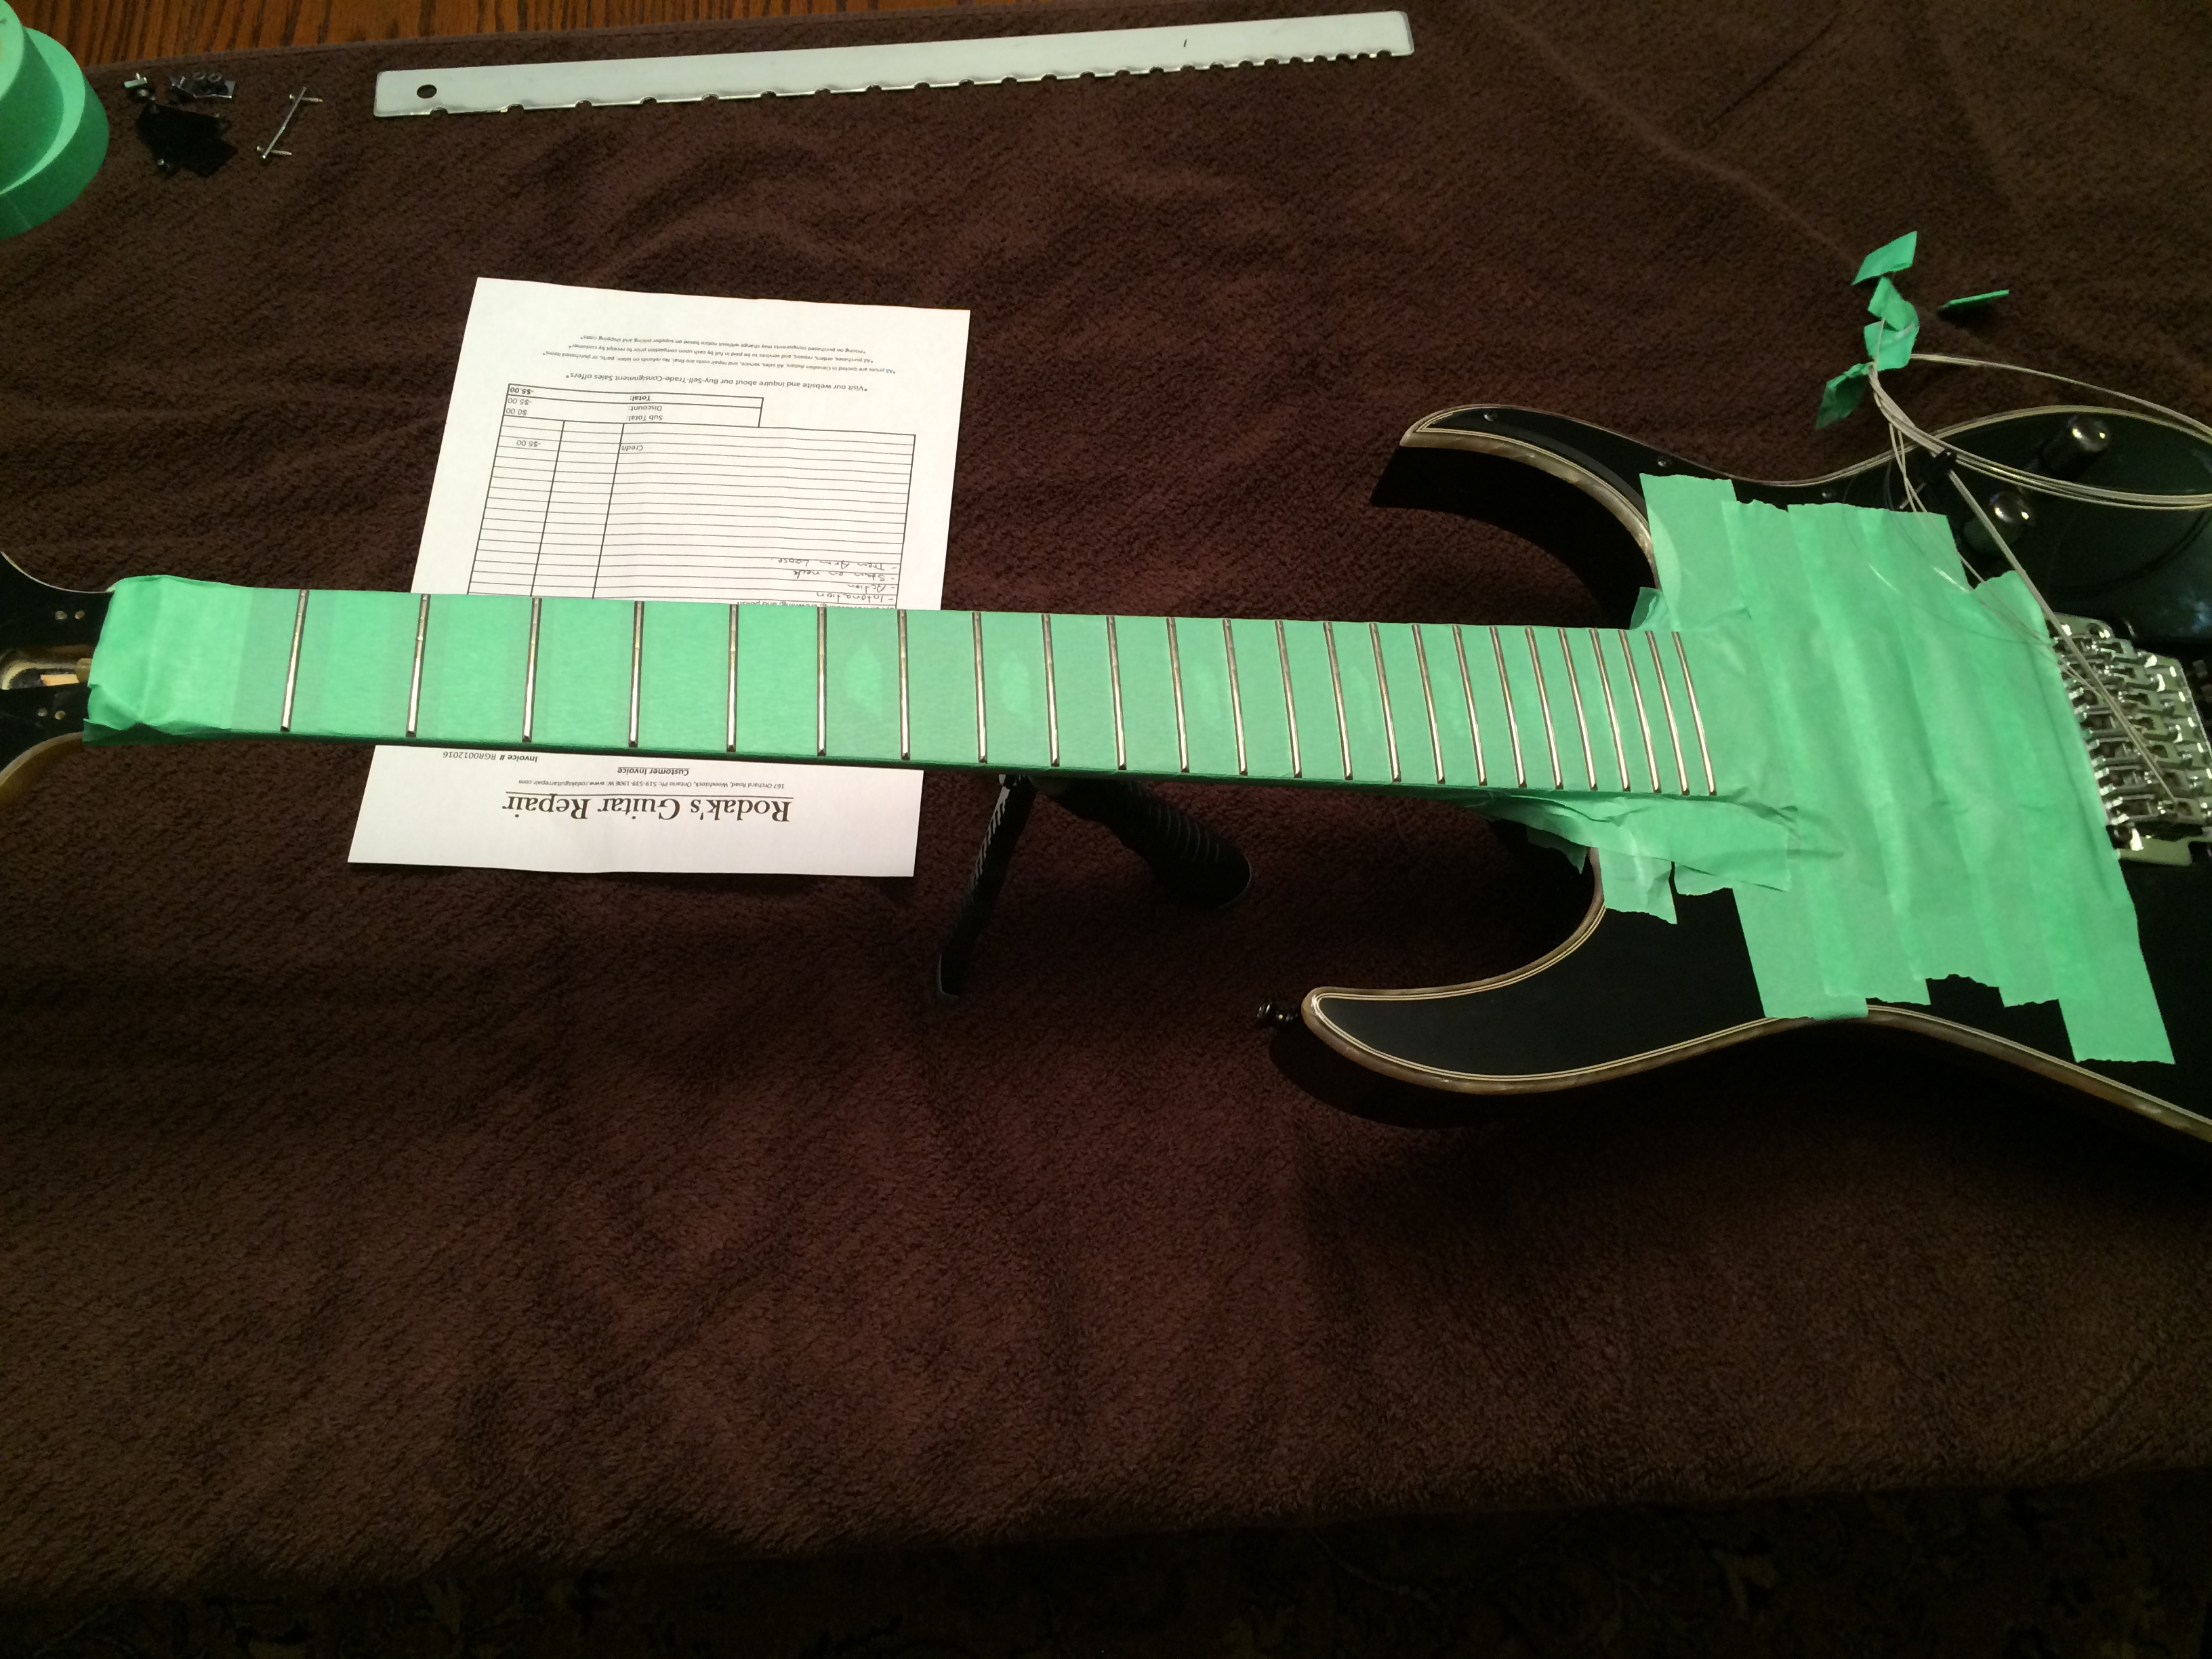 Full Fret Dress 7 String Ibanez